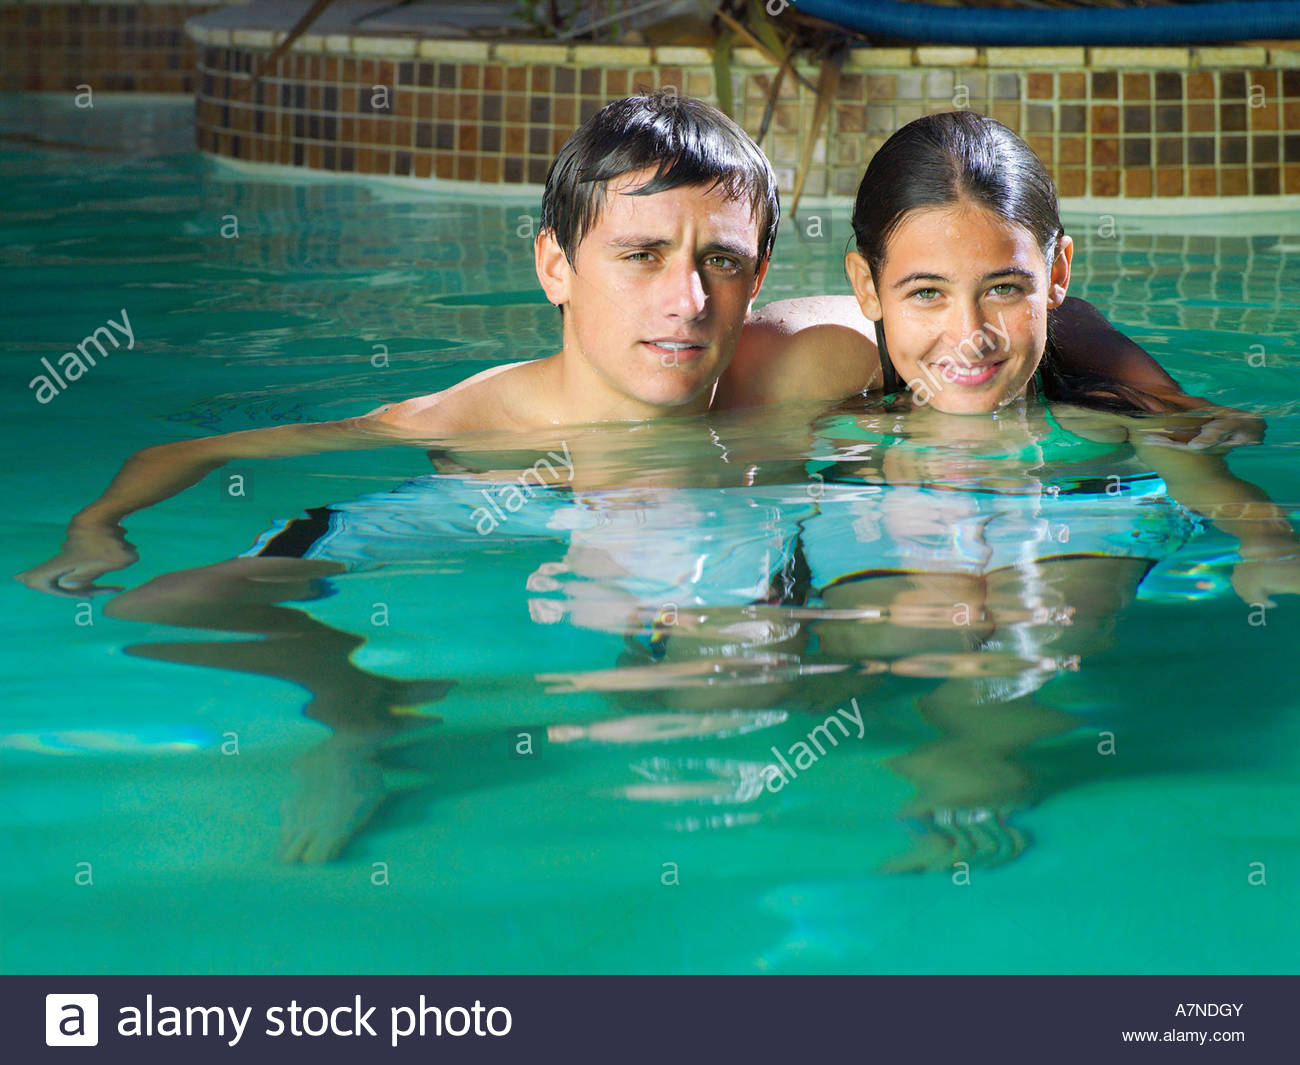 Teenage couple 15 17 relaxing in swimming pool boy with arm around girl smiling portrait Stock Photo